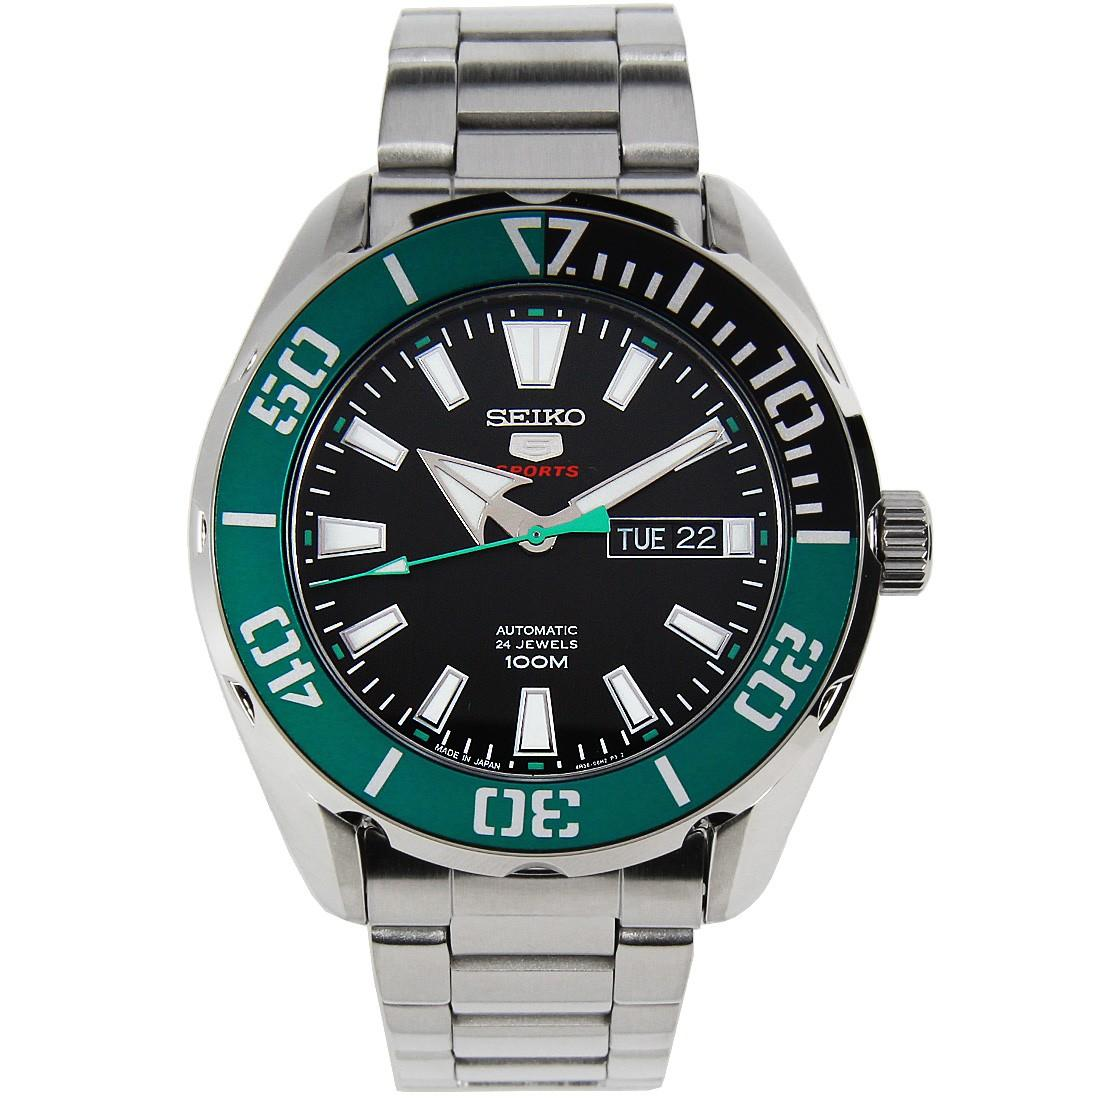 * MADE IN JAPAN * SEIKO 5 SPORTS GREEN BEZEL & BLACK DIAL MENS AUTOMATIC WATCH SRPC53J